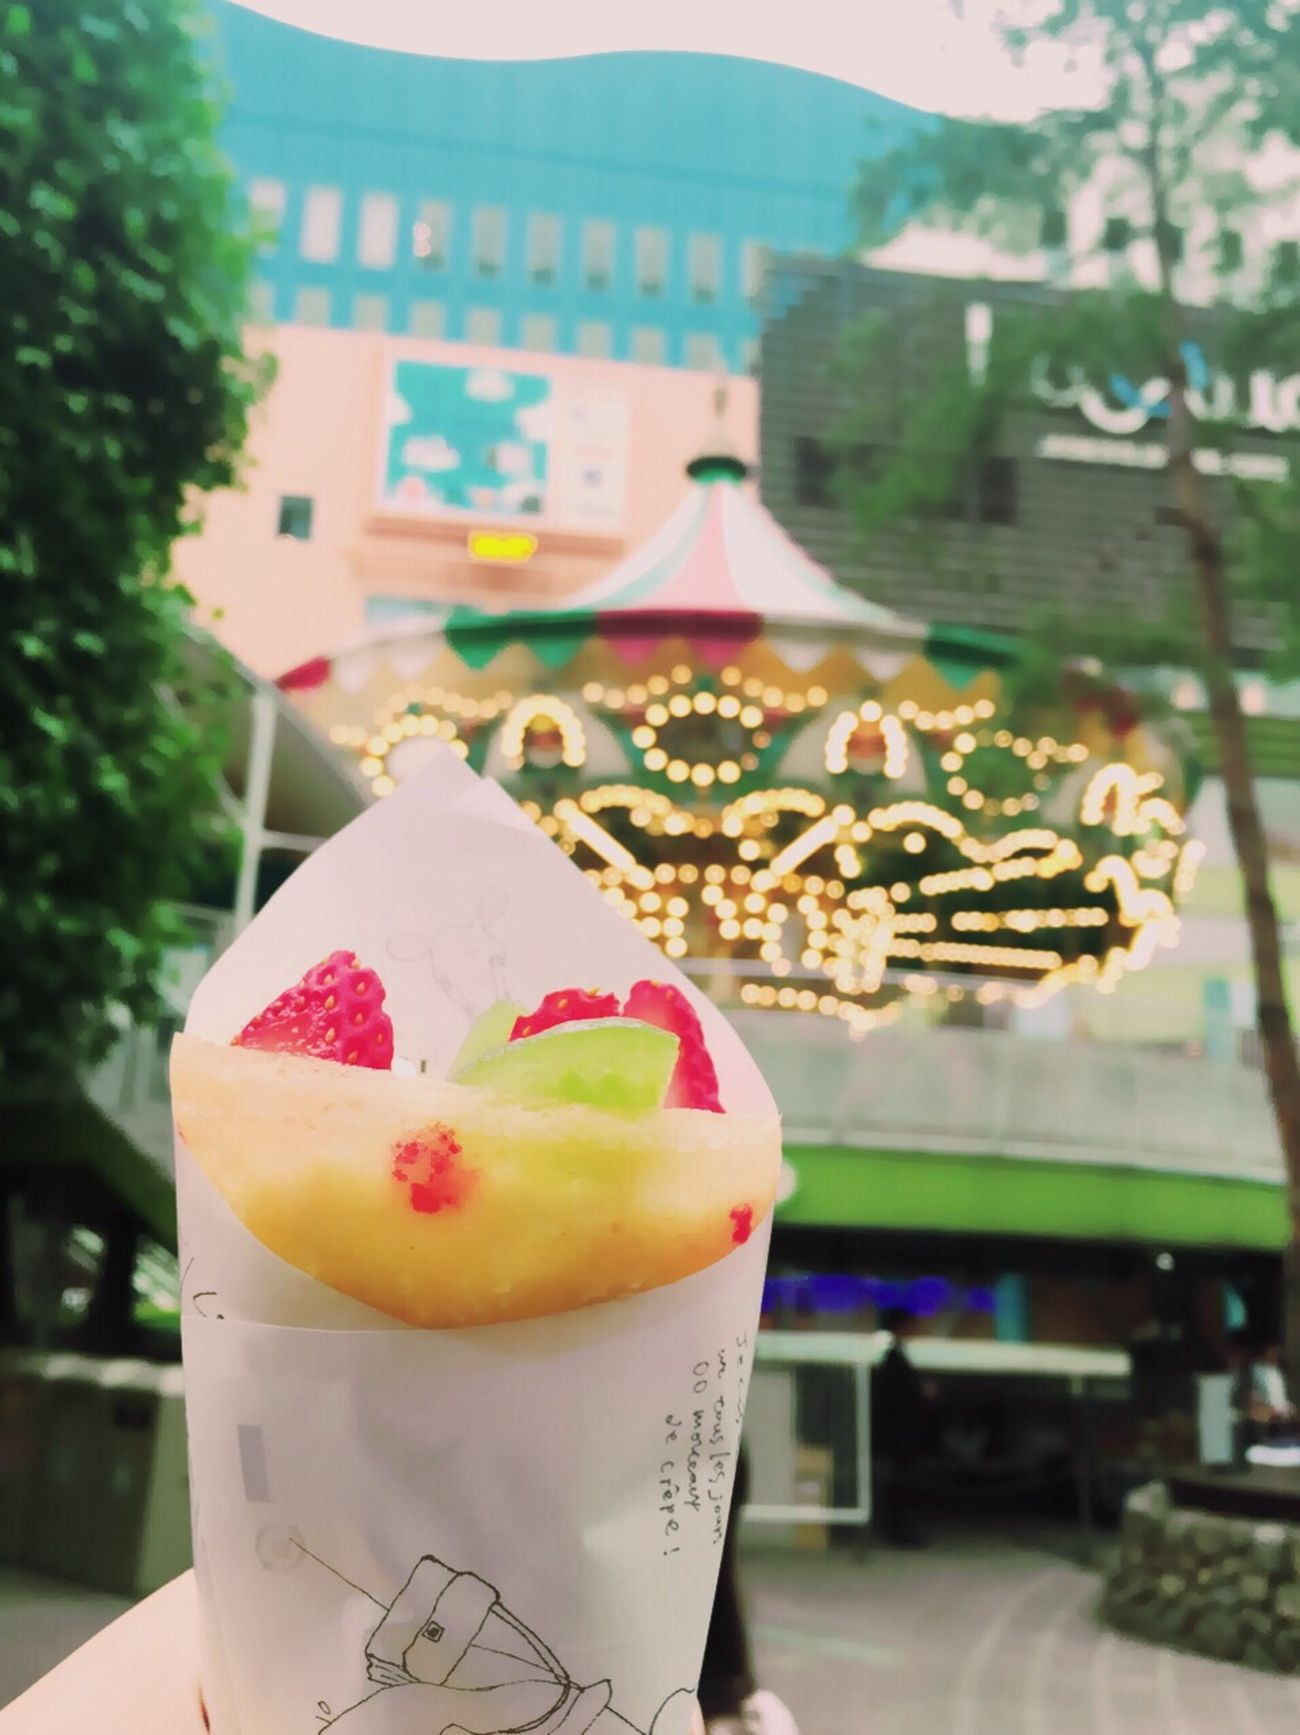 Crepe Food Sweets Strawberry Kiwi Red Yellowgreen Merrygoround Tokyo LaQua Dericious Tree Korakuen